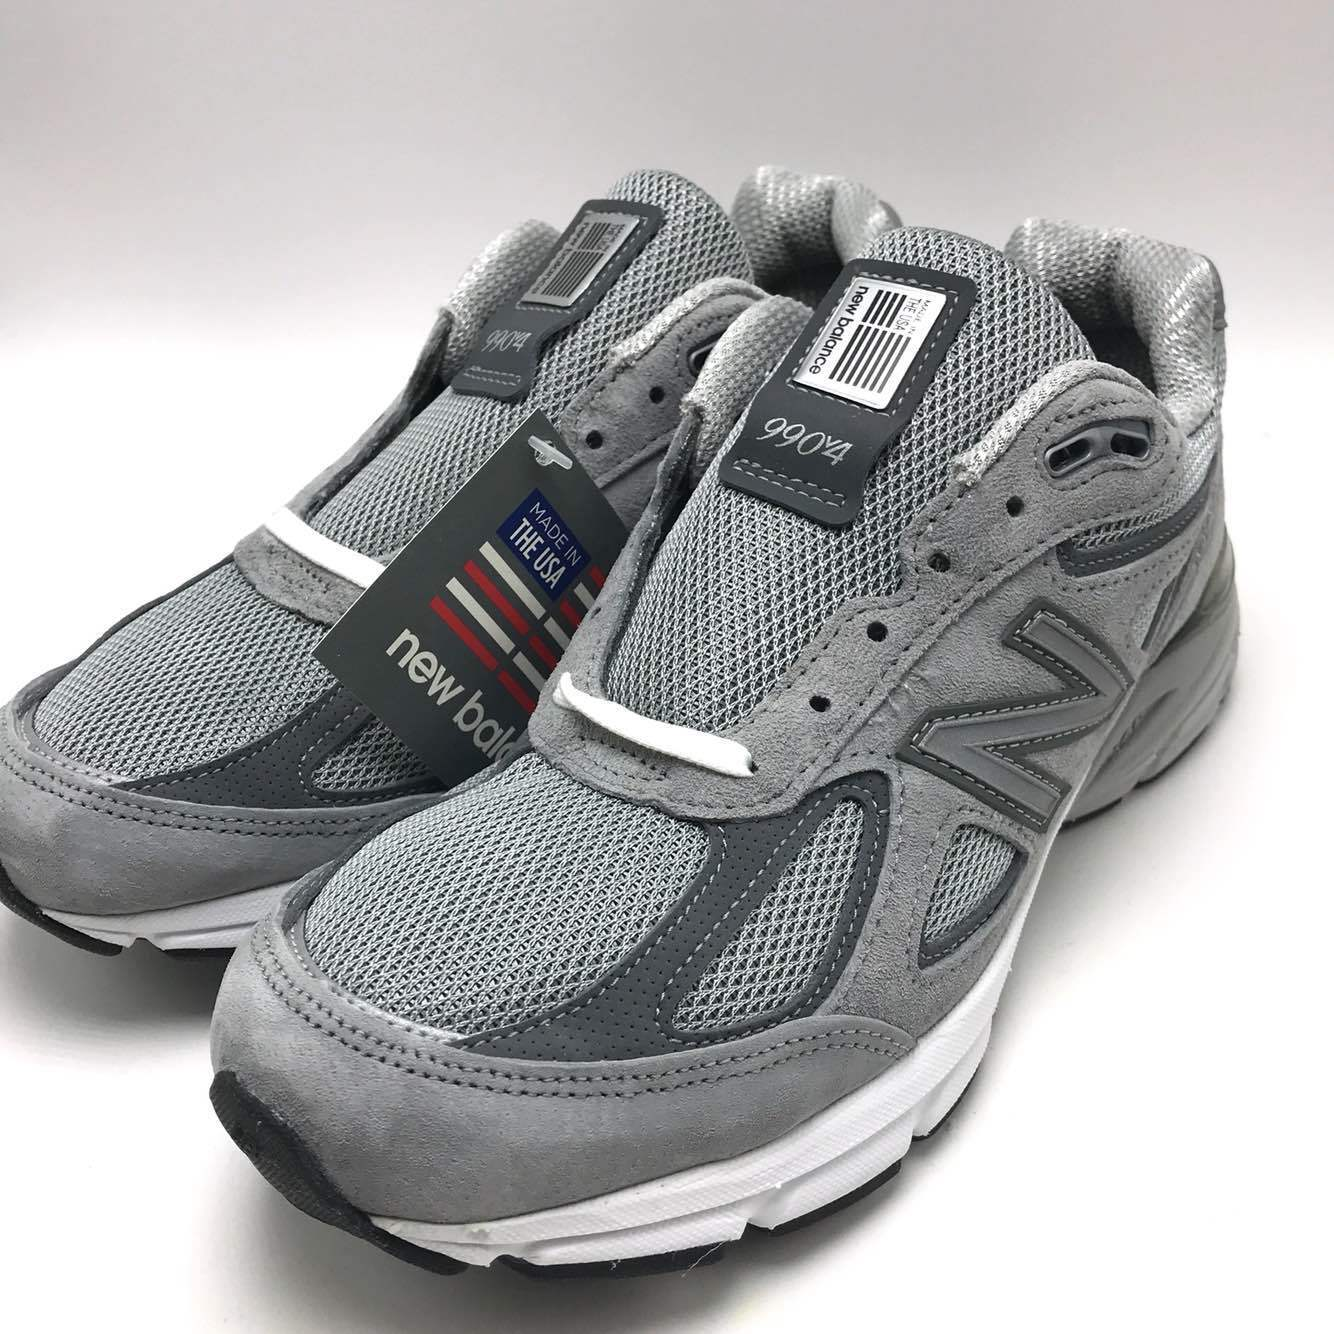 New Balance Men's Running shoes Grey made in USA M990GL4